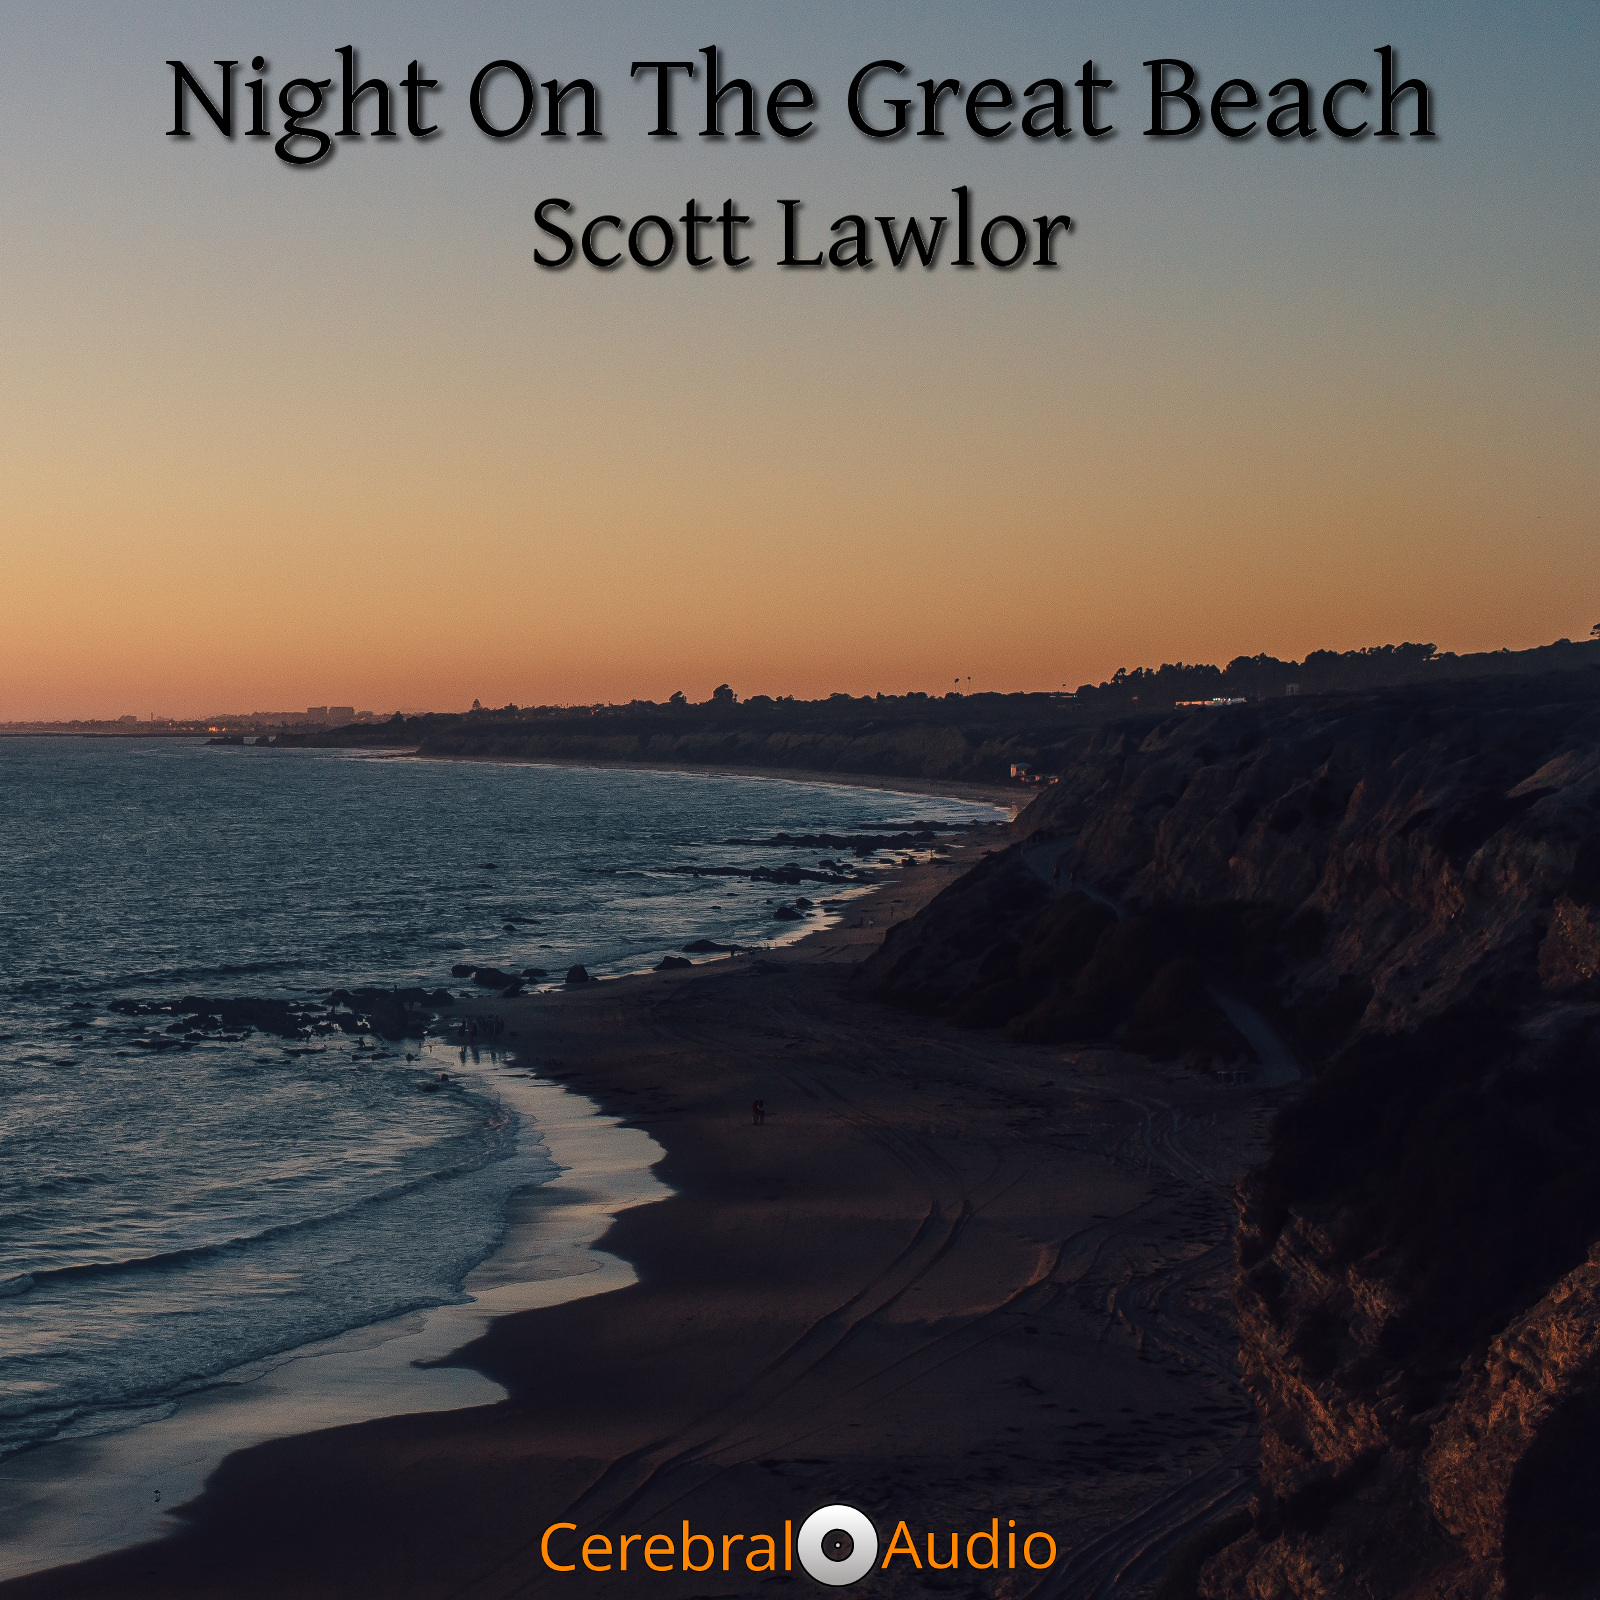 Night On The Great Beach